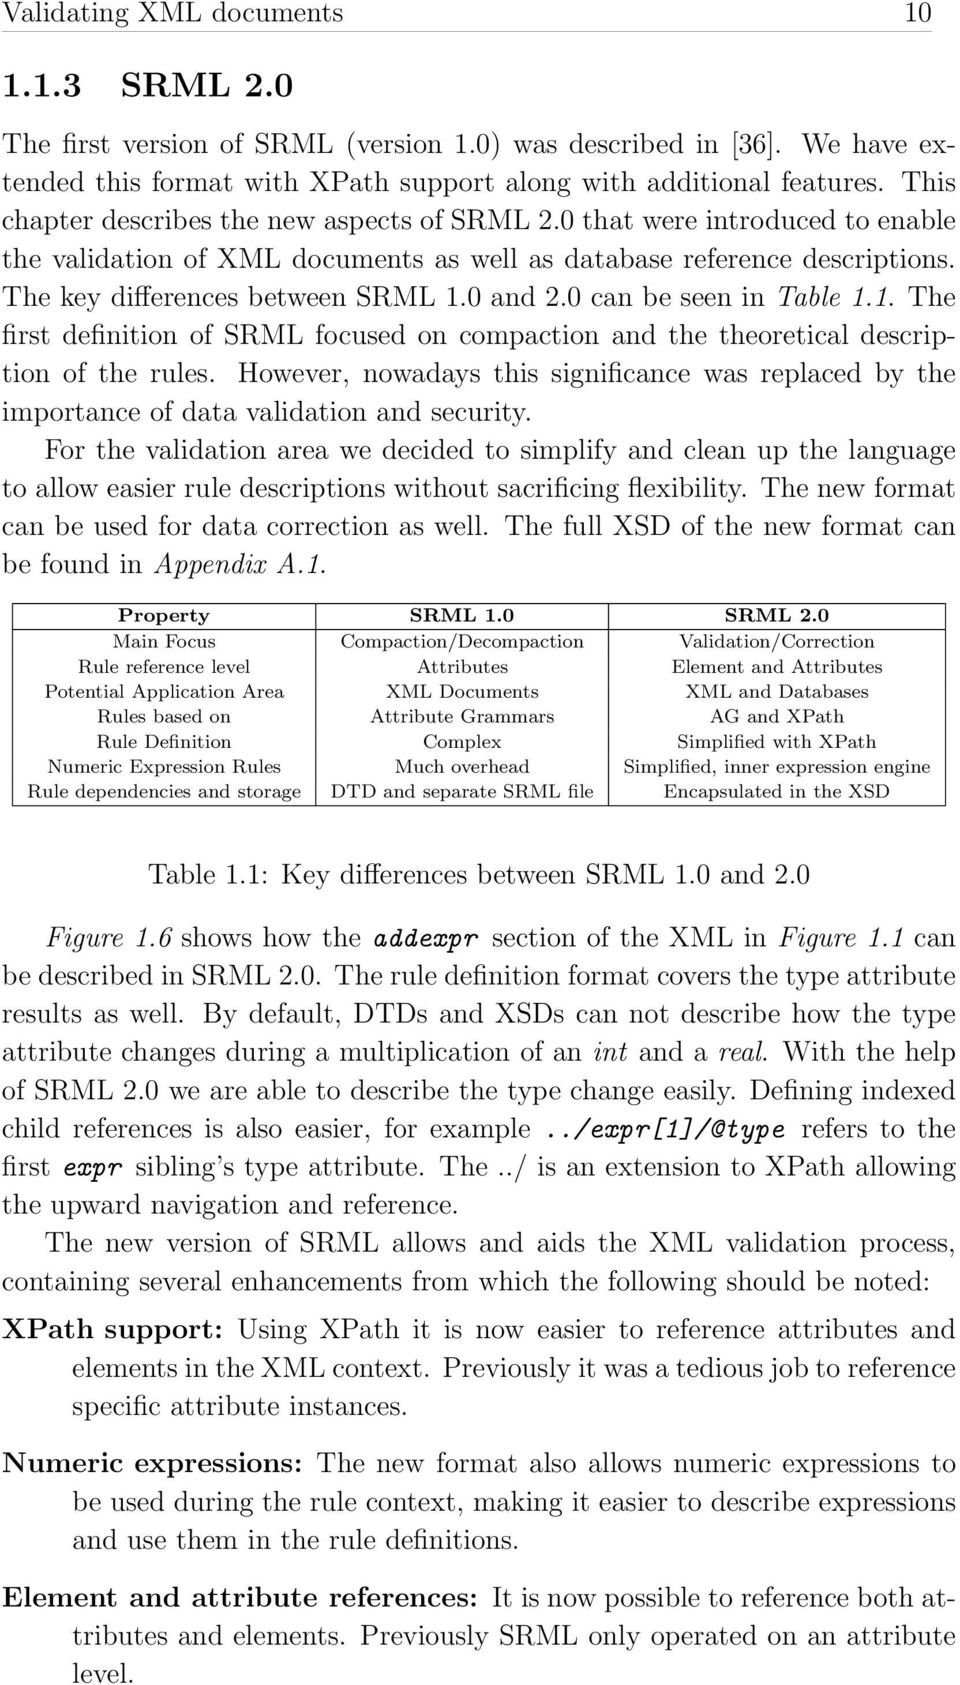 0 and 2.0 can be seen in Table 1.1. The first definition of SRML focused on compaction and the theoretical description of the rules.